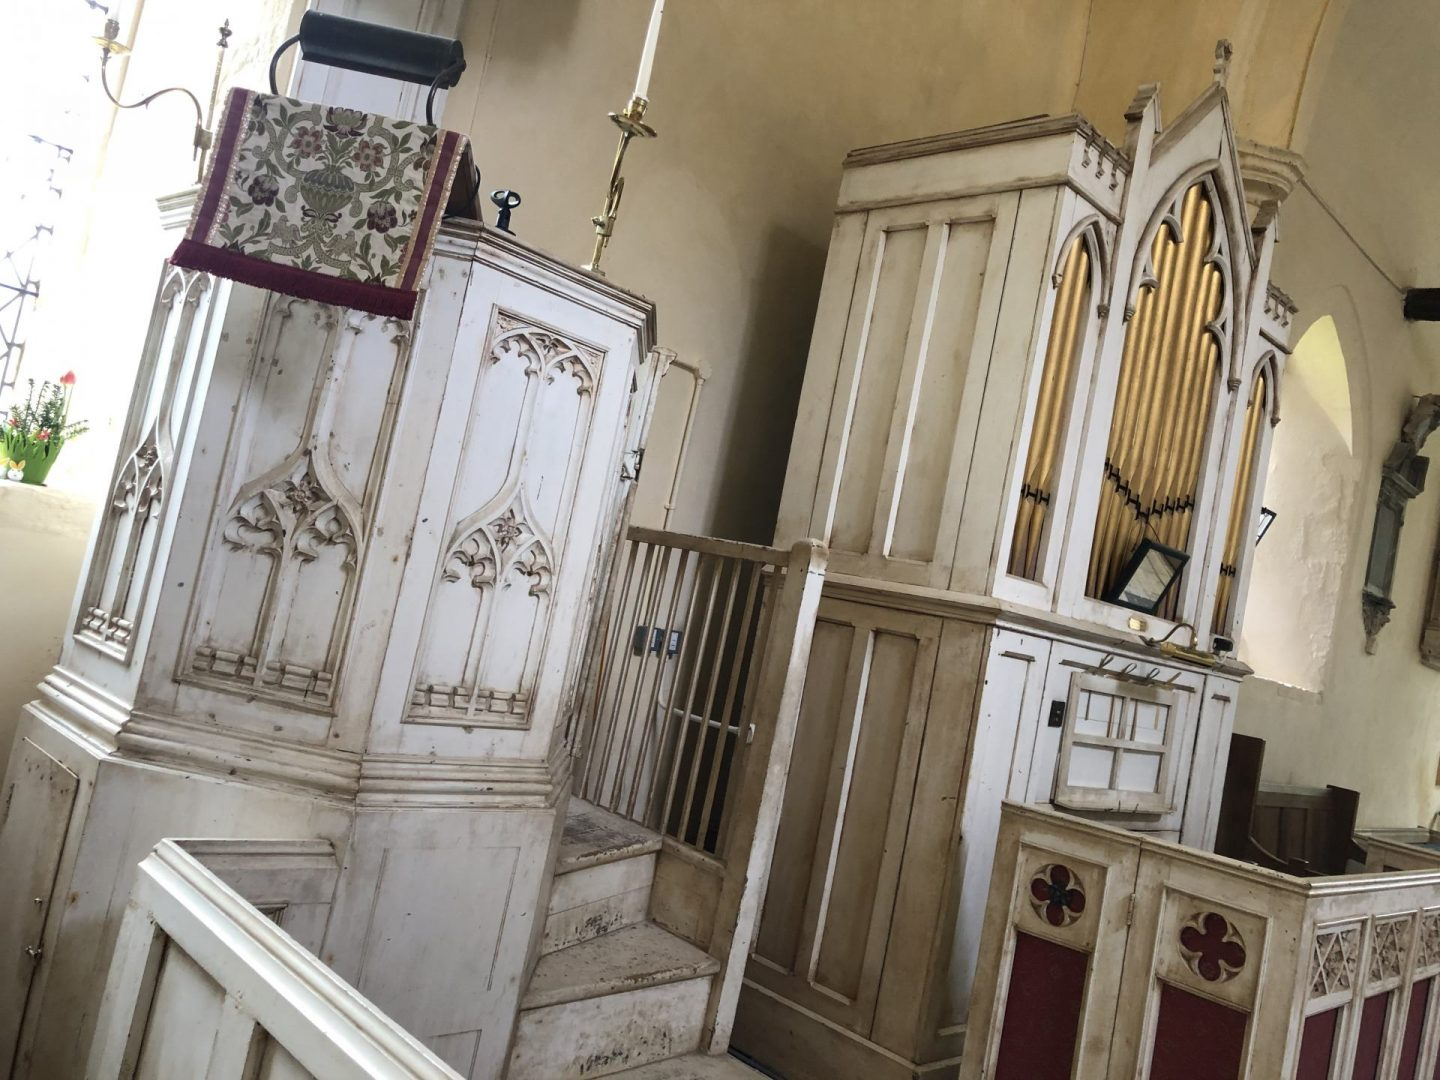 Interior of St Andrew's Church, Helions Bumpstead. Elegantly white pulpit and organ.